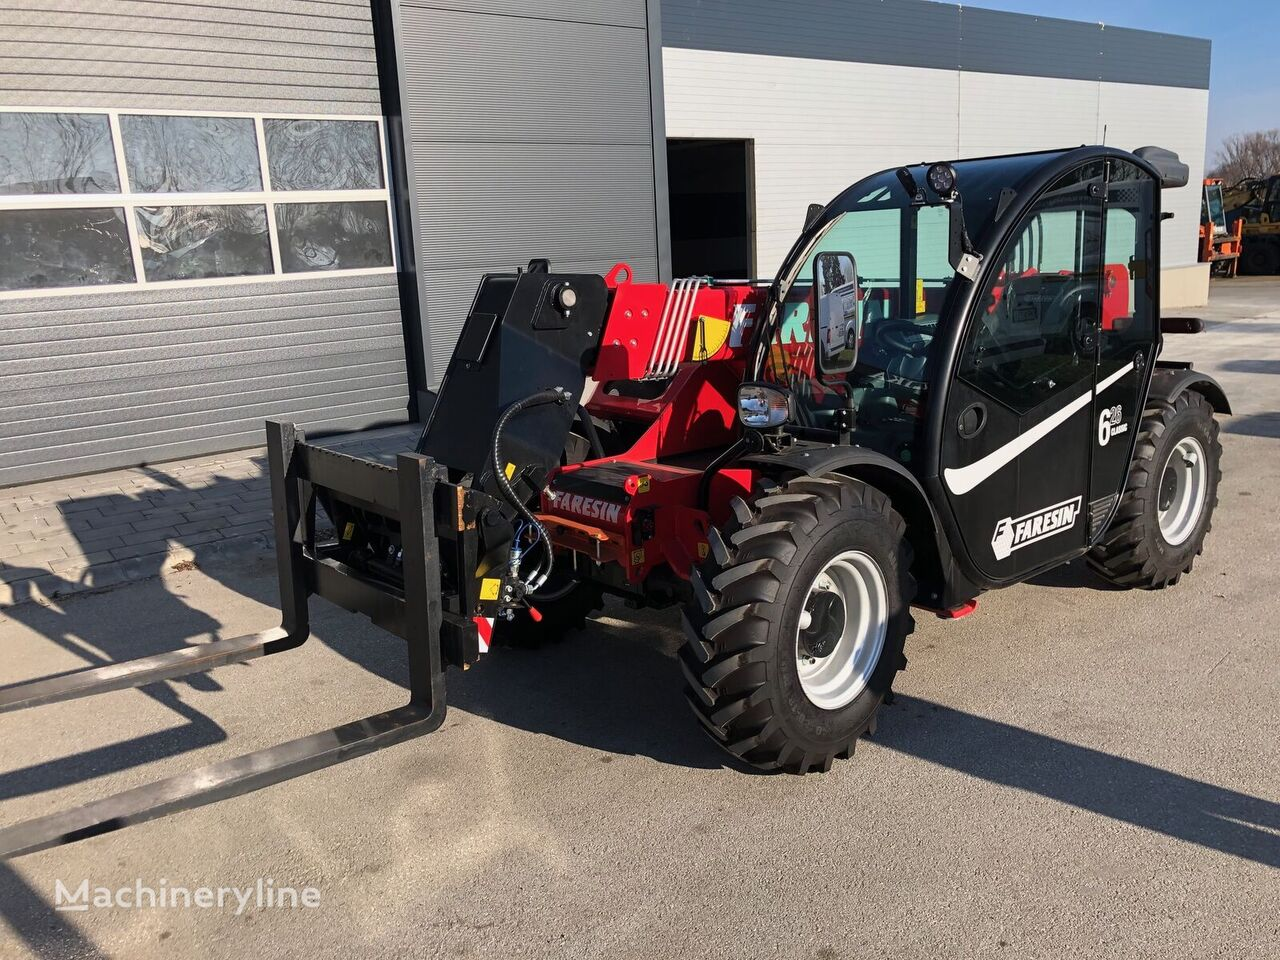 new FARESIN 6.26 telehandler